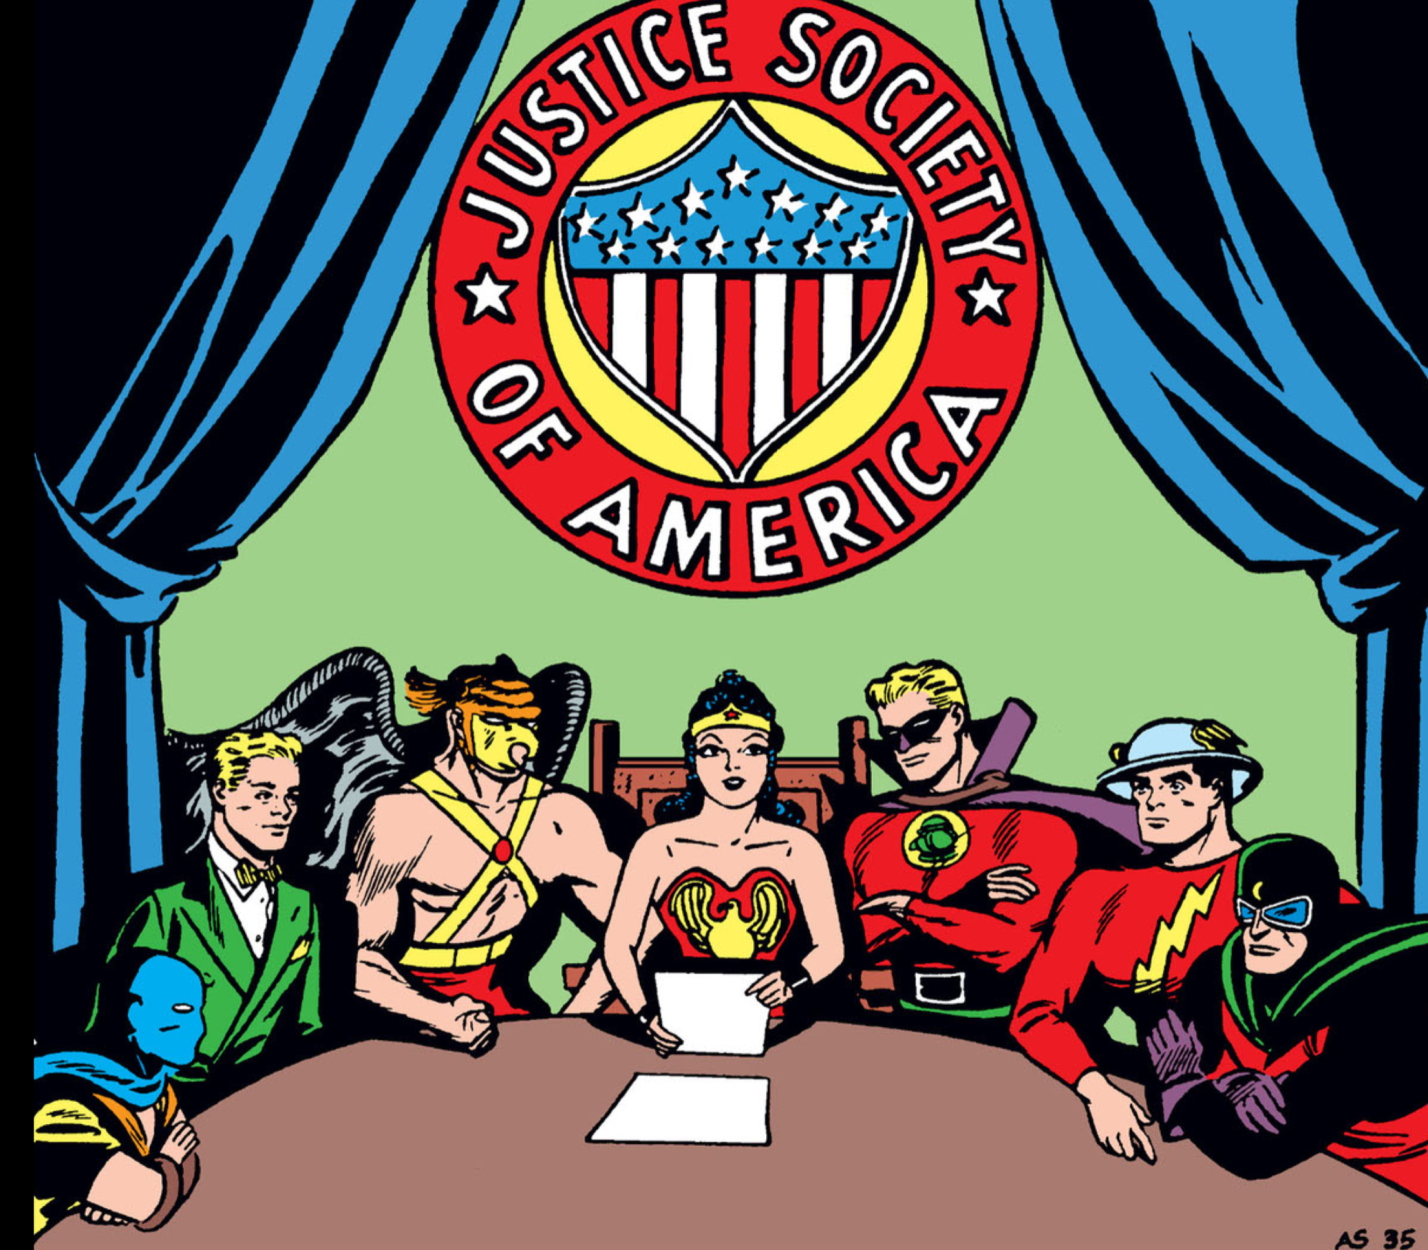 JOhnny and the JSA